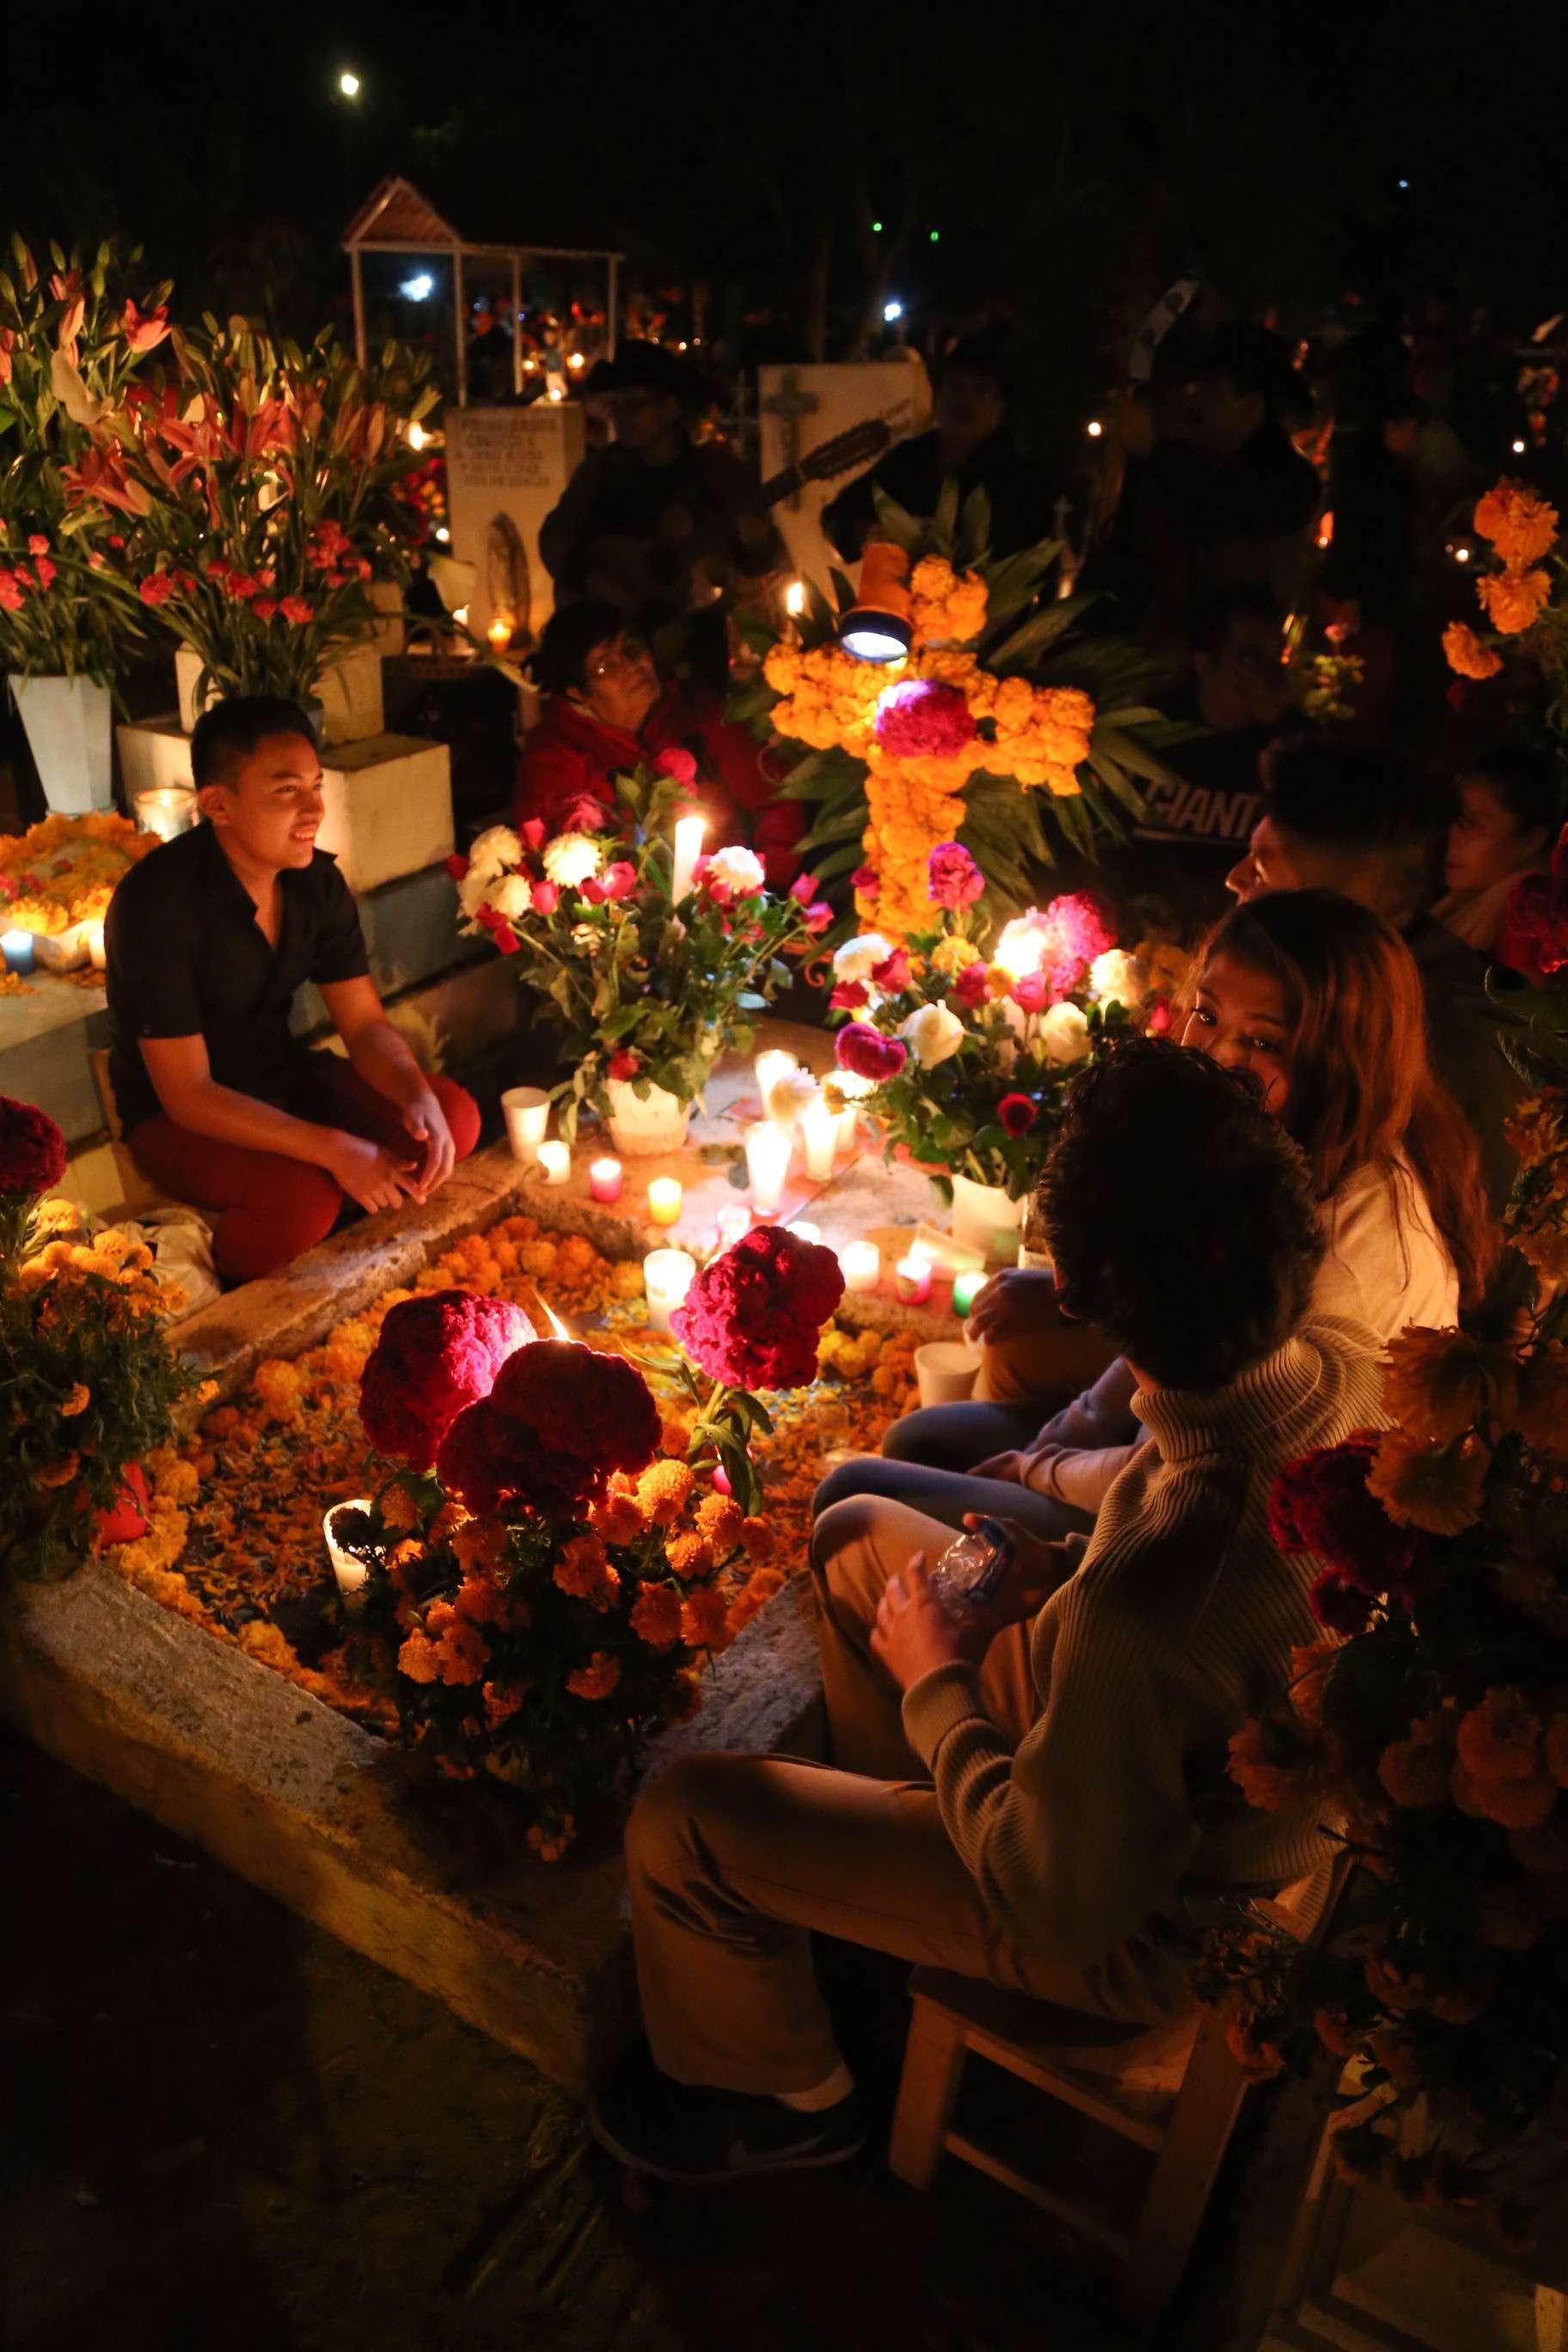 Xoxo, just outside of Oaxaca offers a more tranquil viewing of Mexico's Dia de los Muertos observance.